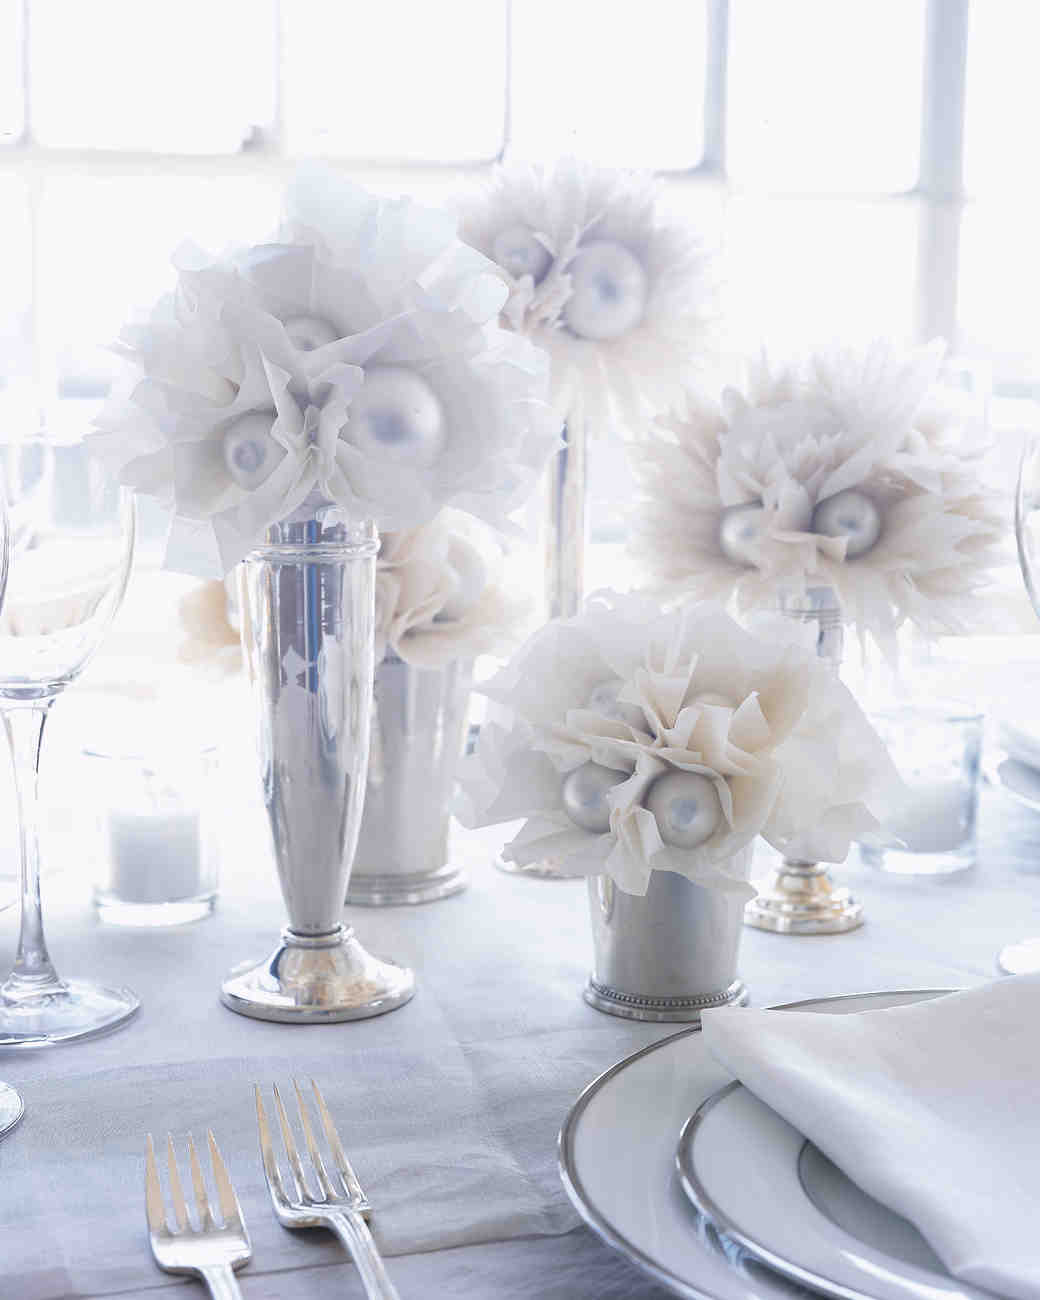 4 Of The Best White Winter Wedding Themes Wedding Ideas: 23 DIY Wedding Centerpieces We Love